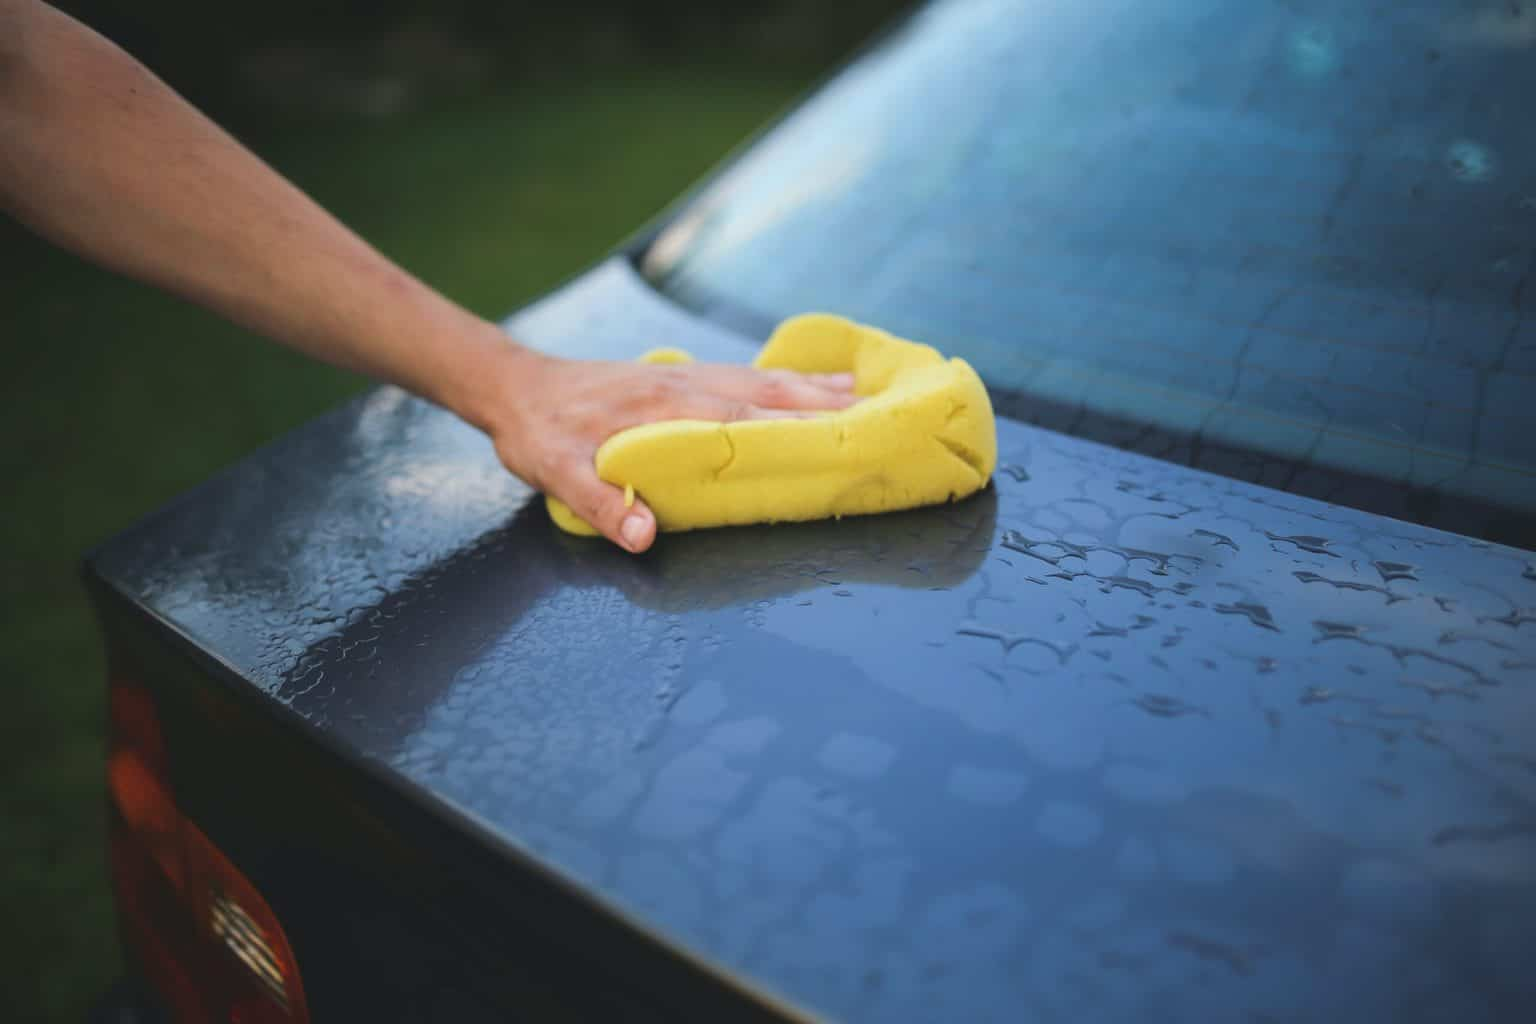 Wiping the back of the car witha yellow towel